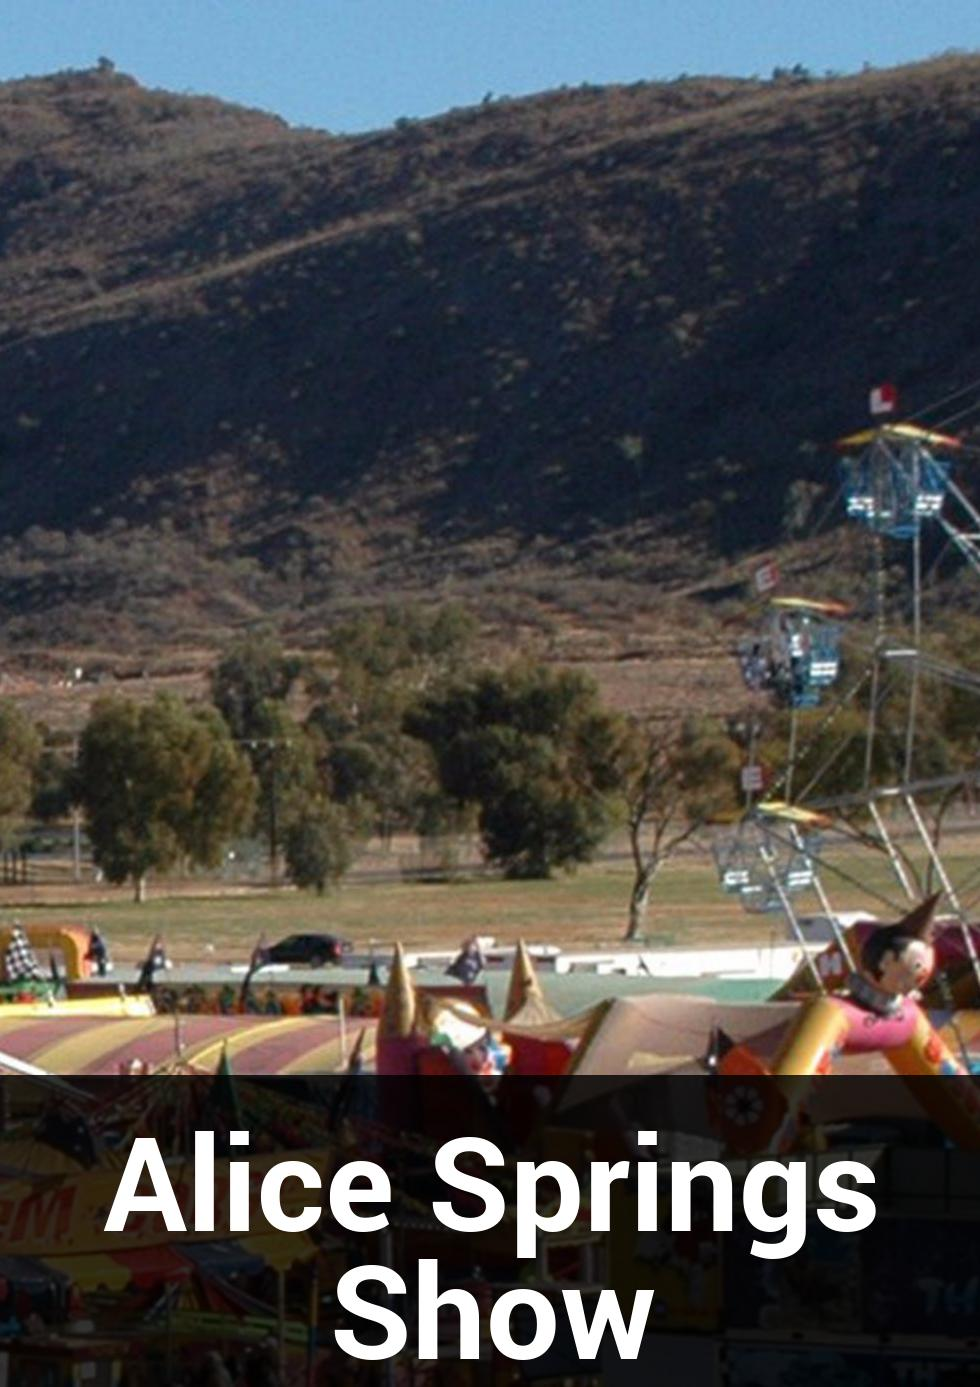 Alice Springs Show at Len Kittle Drive